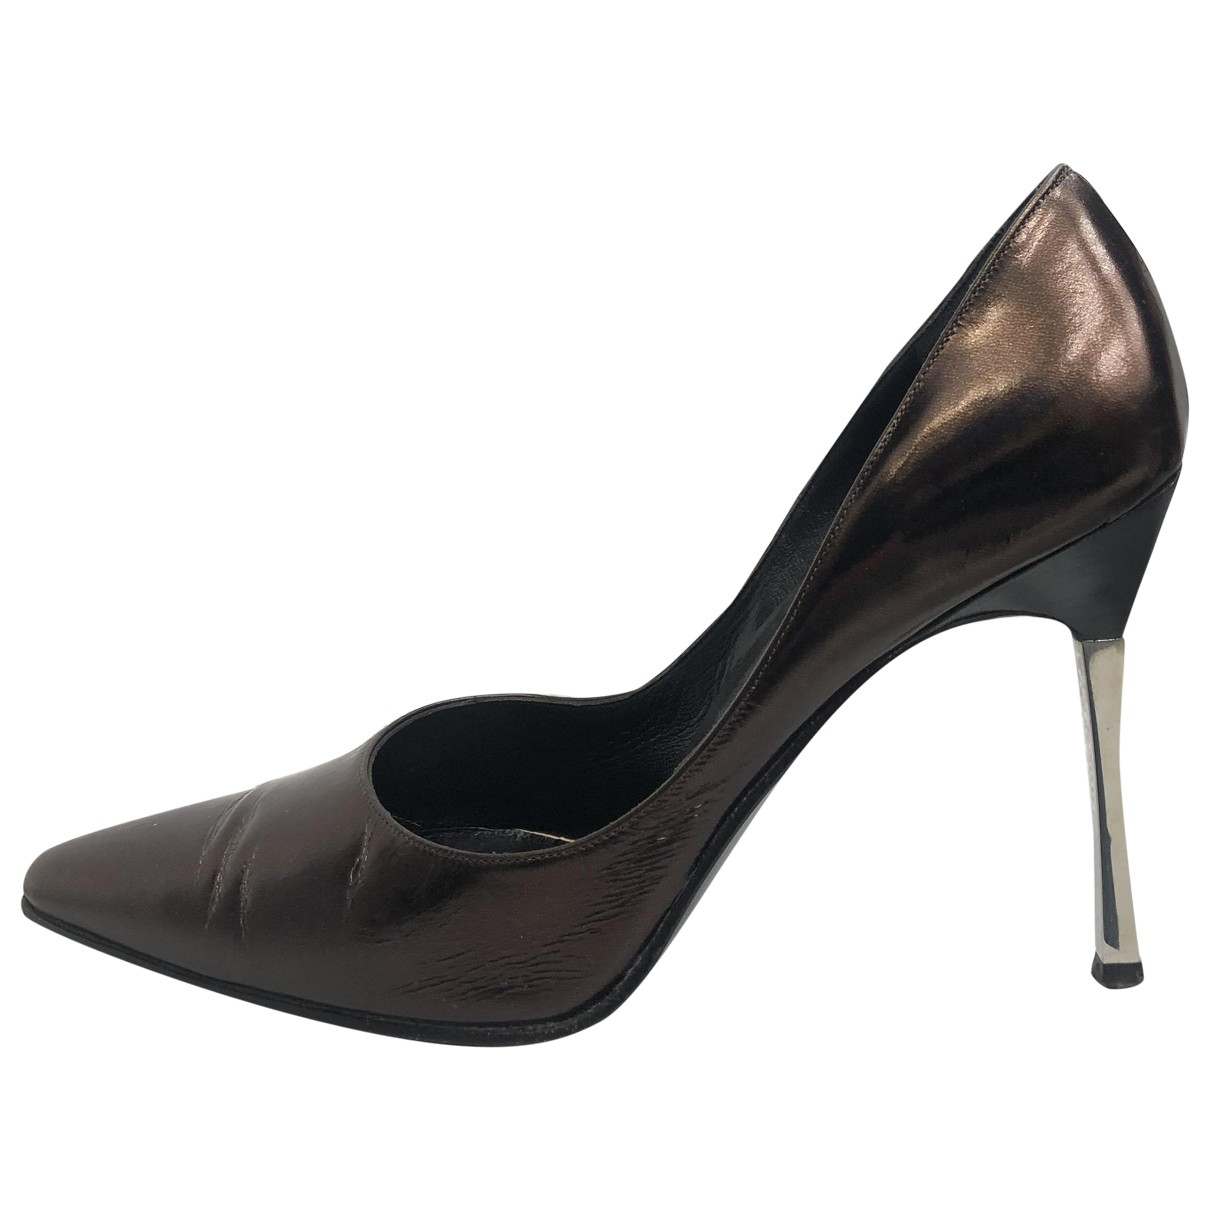 Gucci Sylvie Brown Leather Heels for Women 39.5 EU